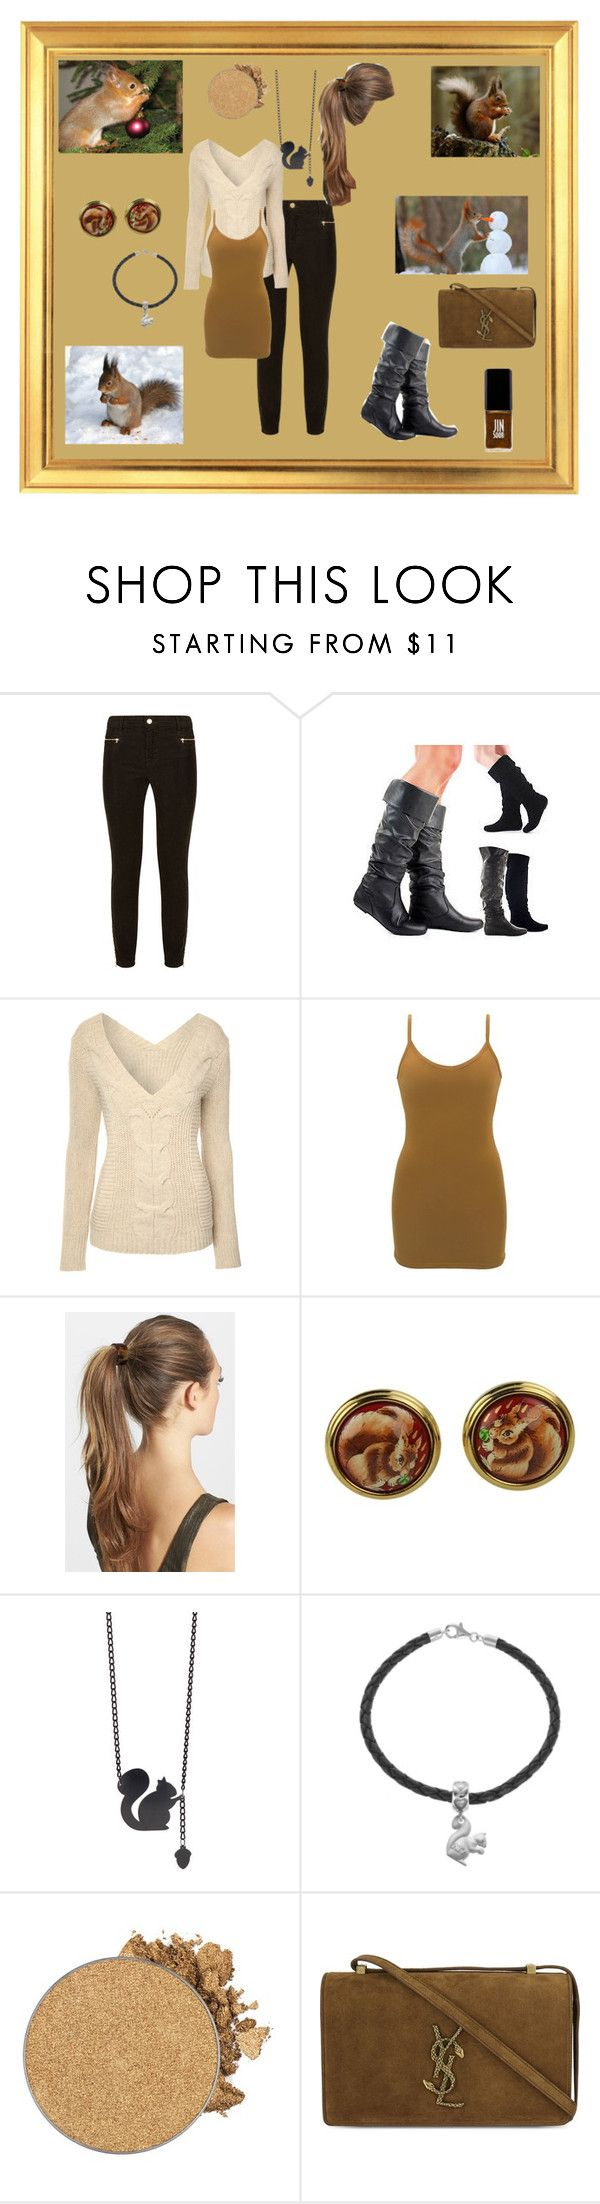 """""""Squirrel"""" by christinejoanna ❤ liked on Polyvore featuring J Brand, Jane Norman, BKE, France Luxe, Hermès, Anastasia Beverly Hills, Yves Saint Laurent, Jin Soon and animal"""